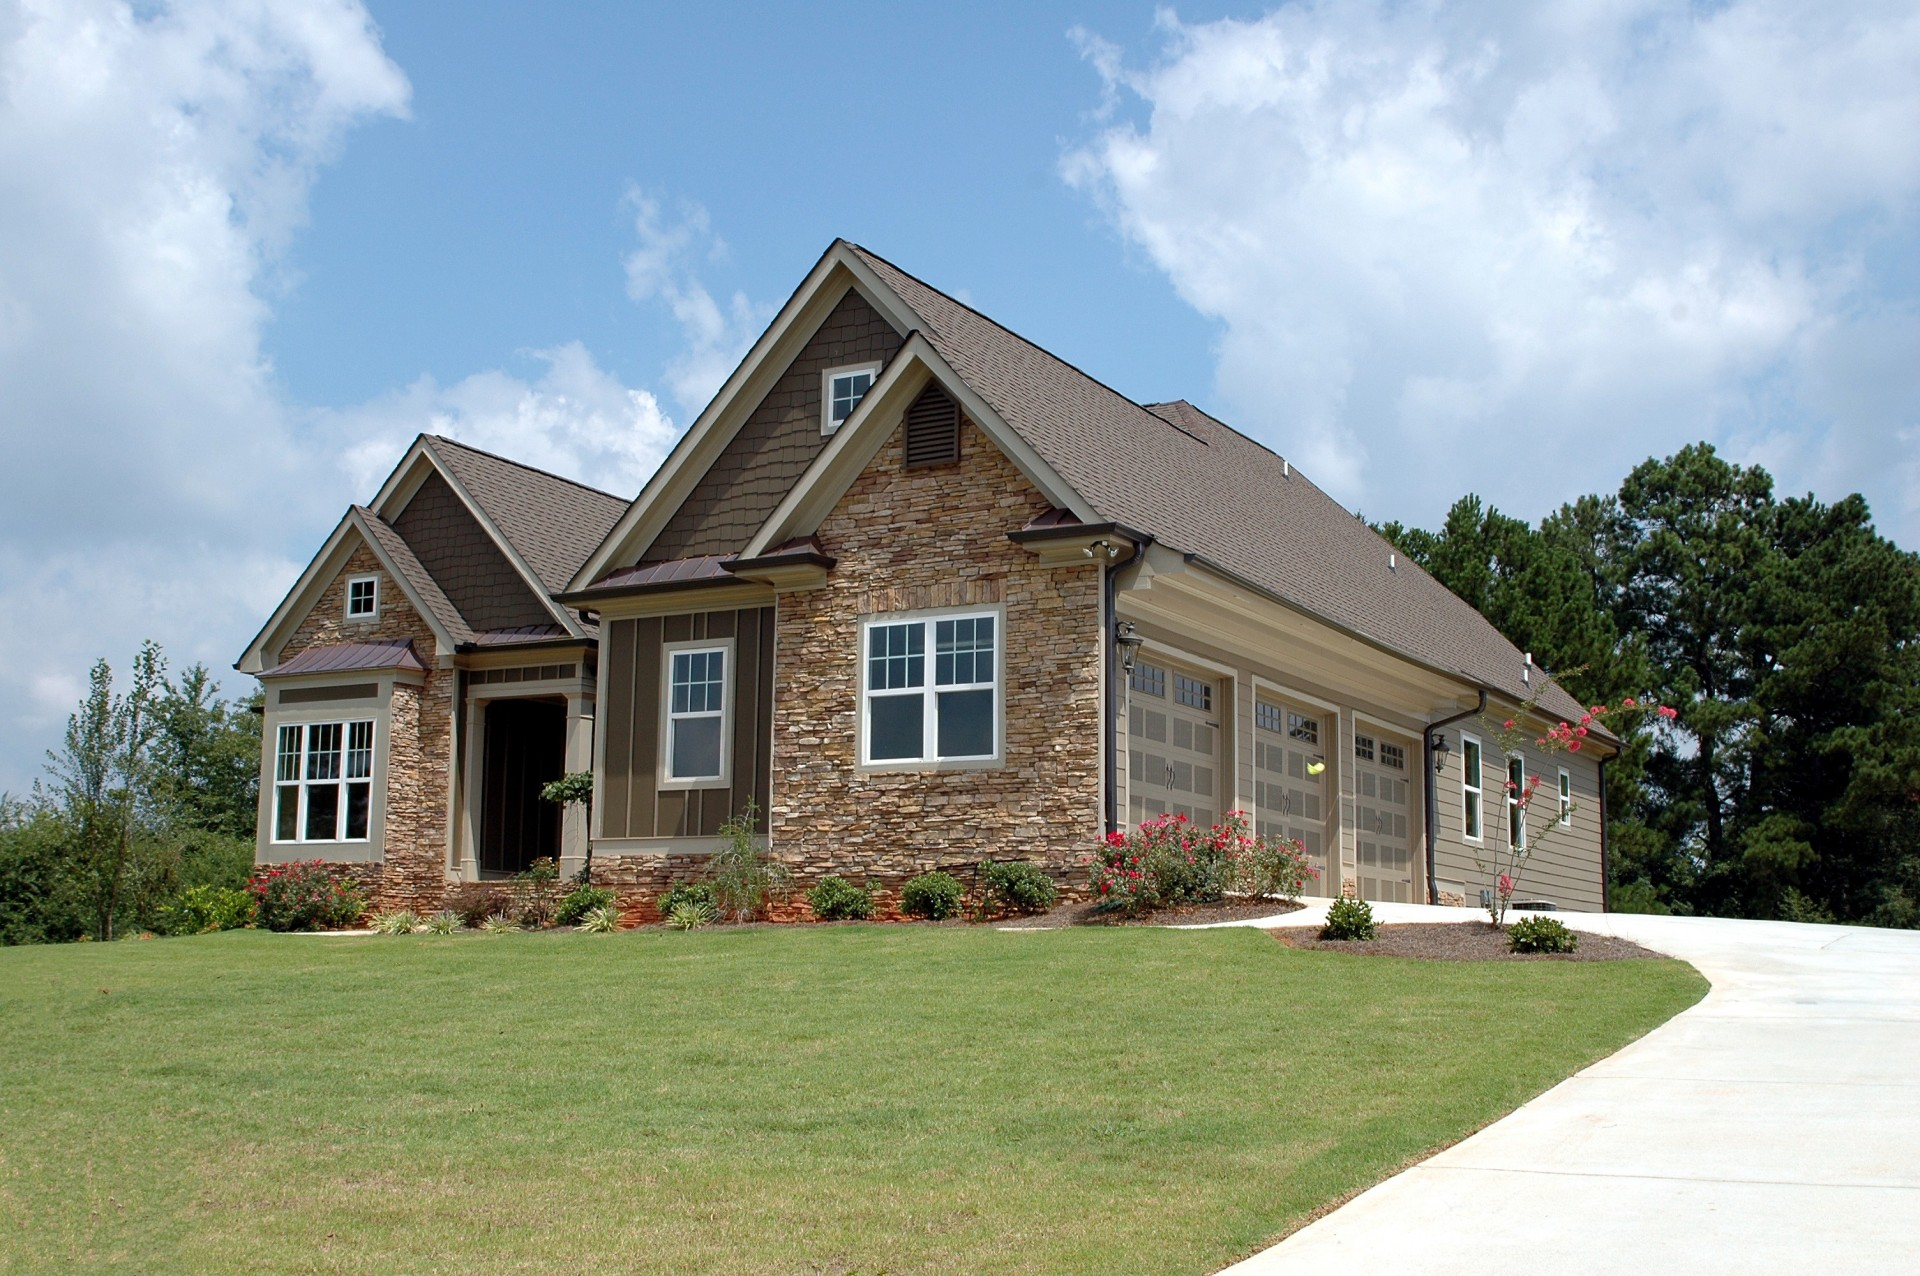 New,home,house,construction,builder - free image from needpix.com